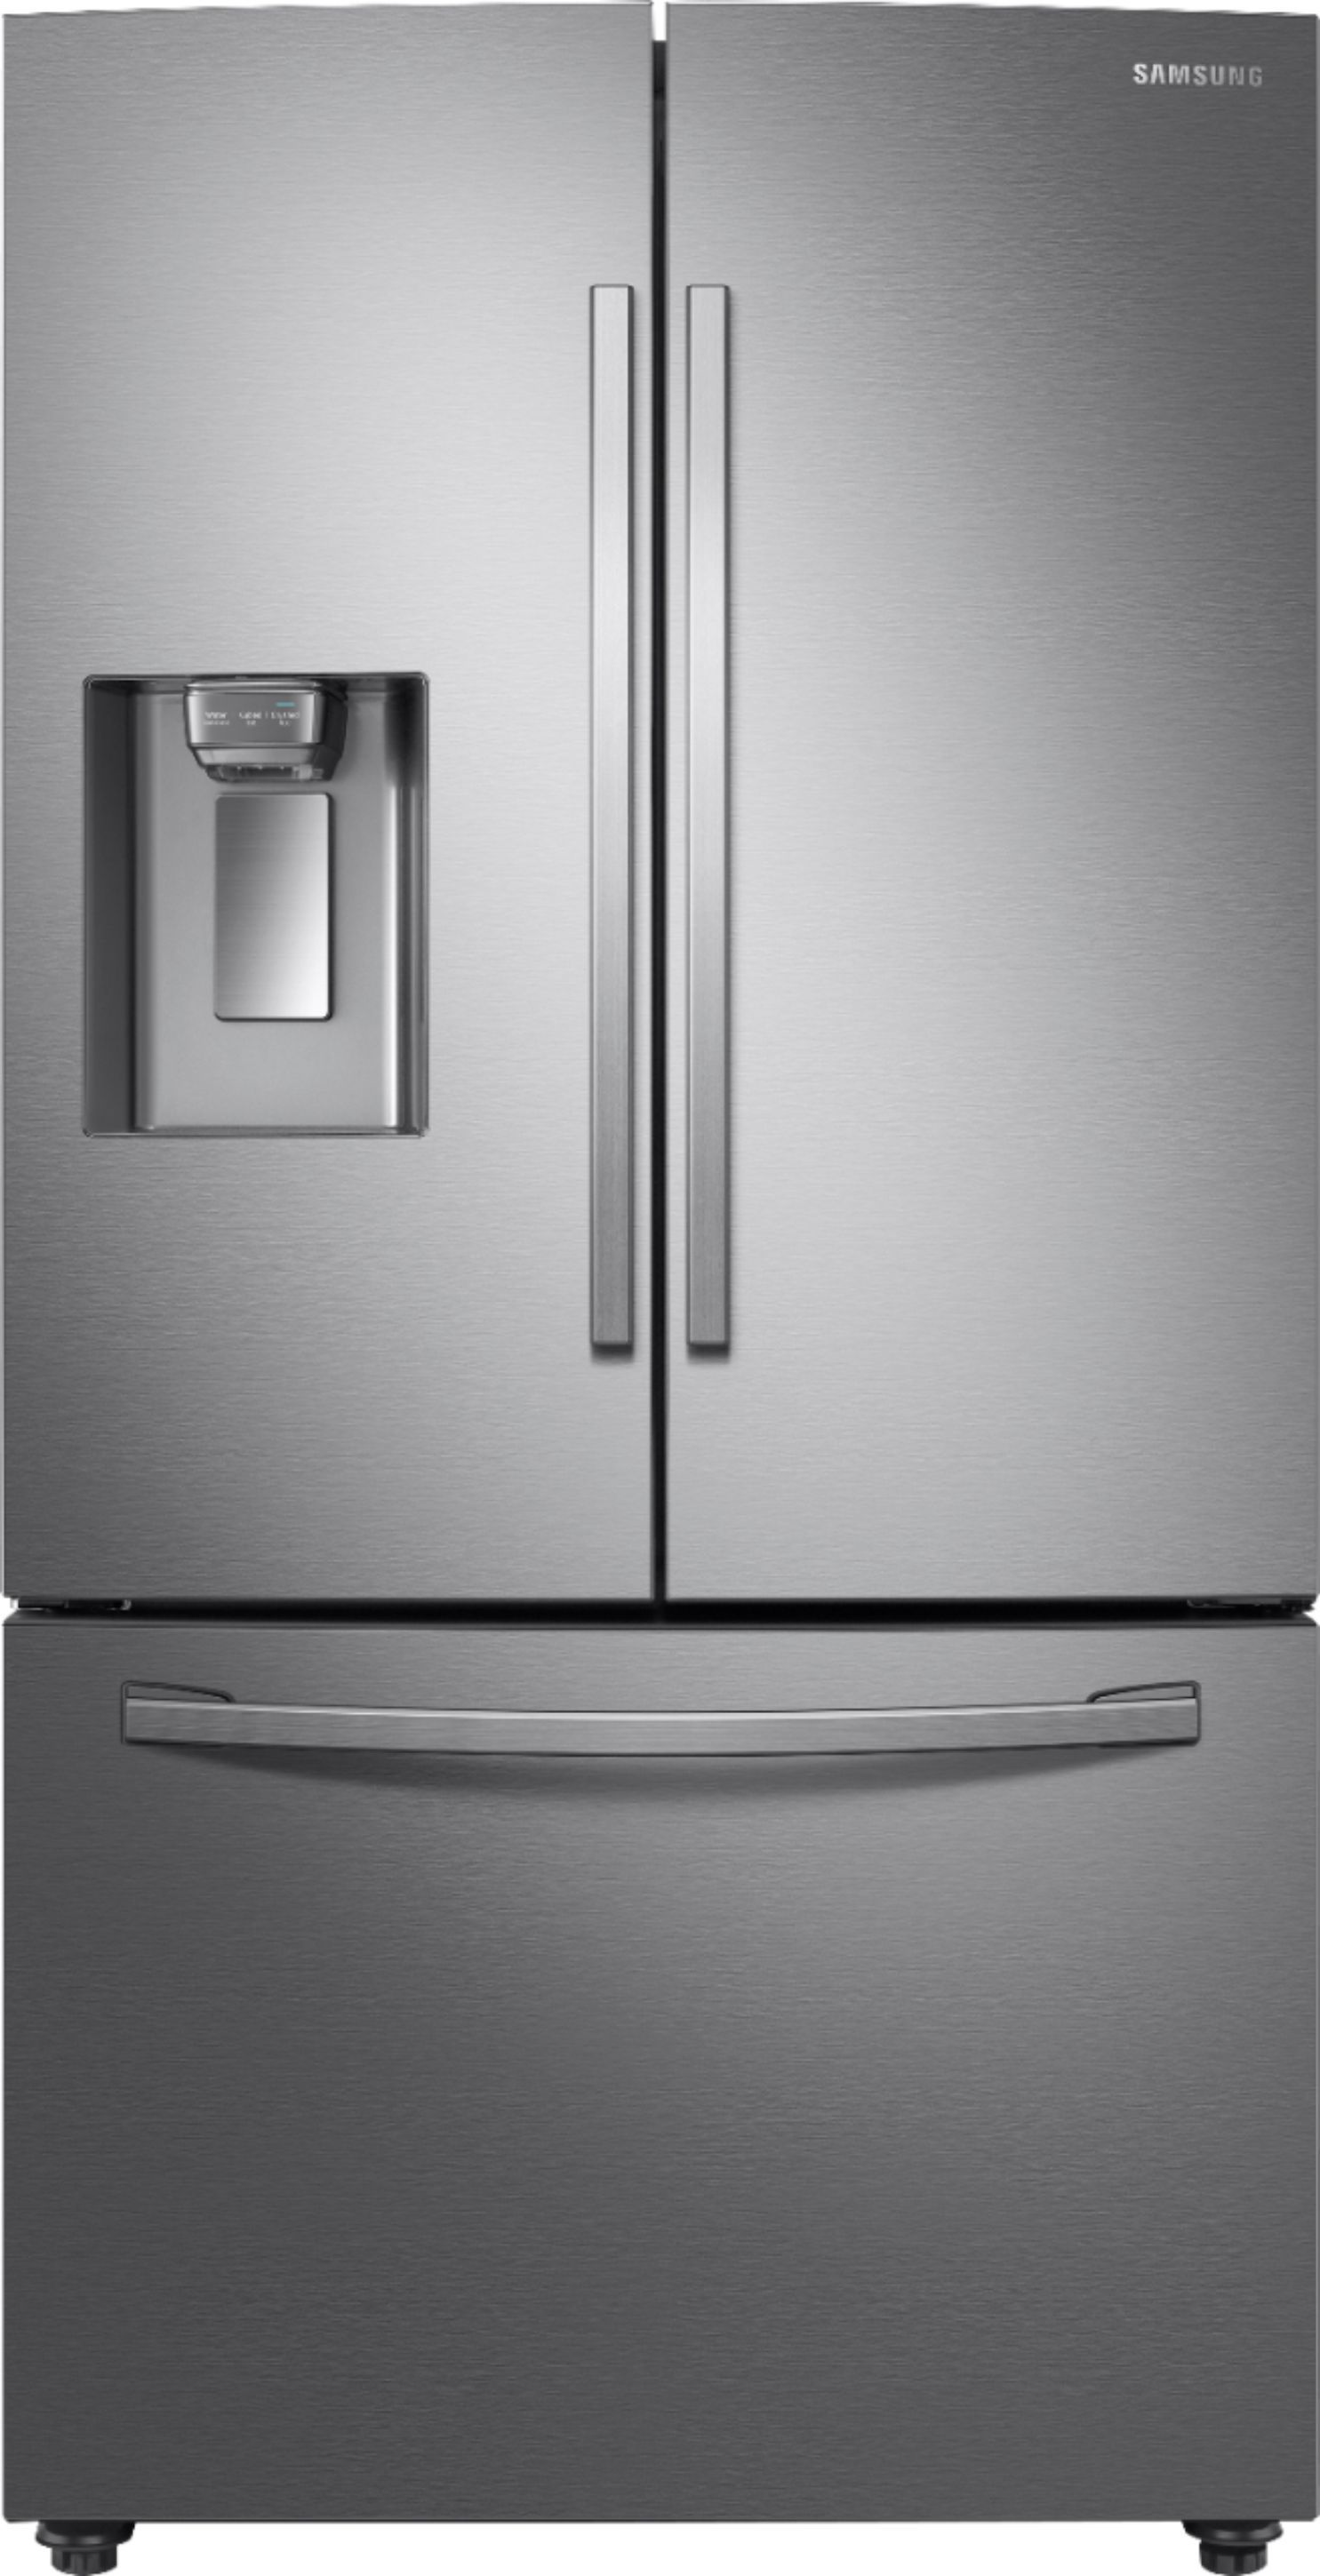 Samsung 22 6 Cu Ft French Door Counter Depth Fingerprint Resistant Refrigerator With Coolselect Pantry Stainless Steel Rf23r6201sr Best Buy Stainless Steel French Door Refrigerator Stainless Steel Refrigerator Cool Things To Buy